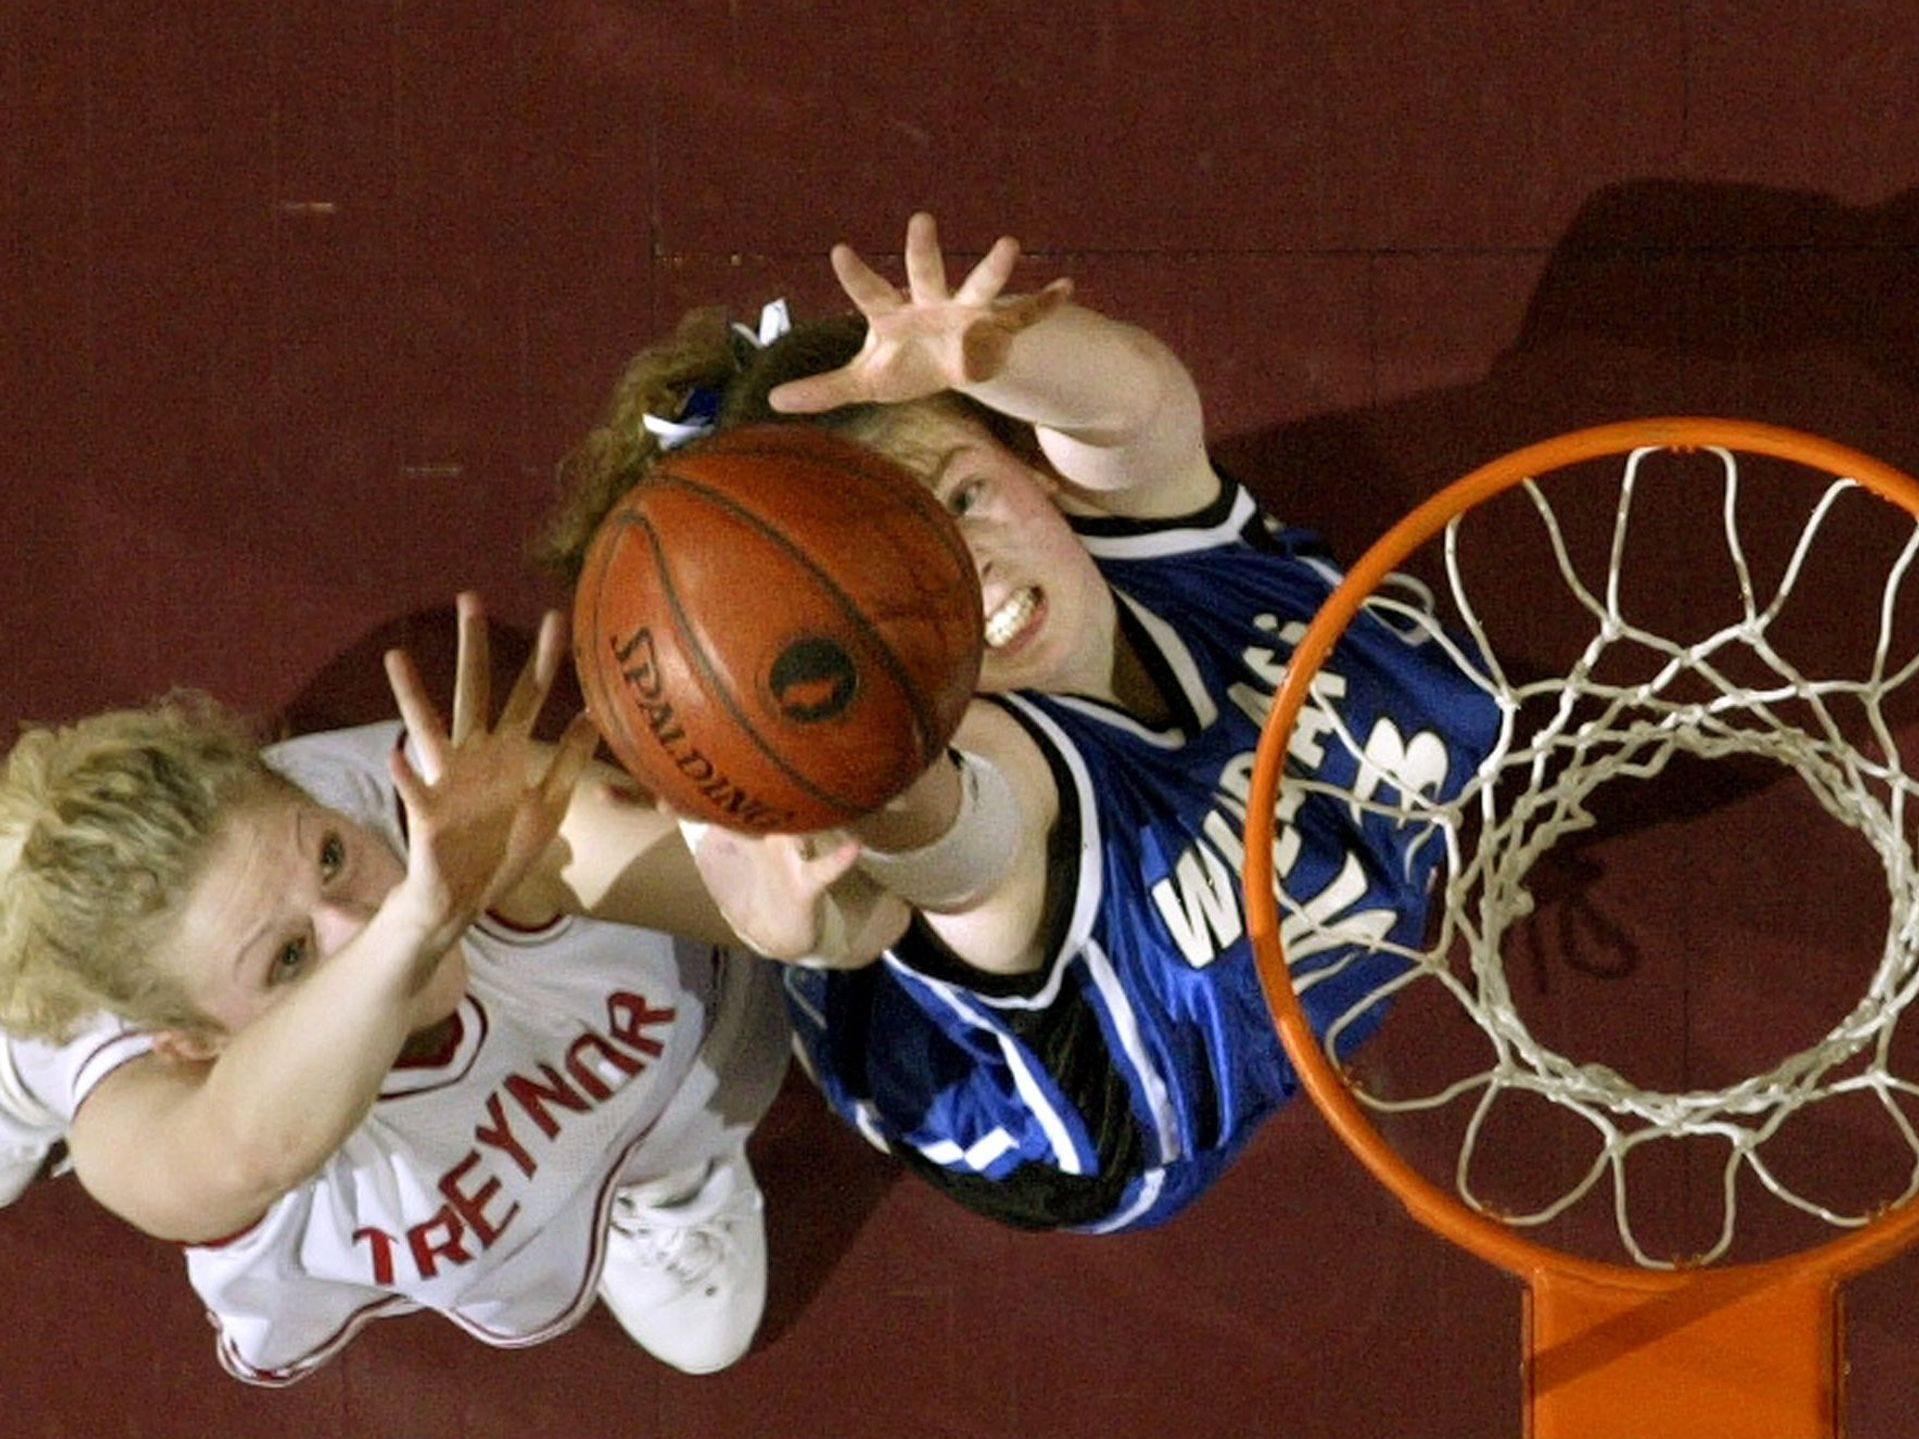 2004: Rockwell City's Felicia Ellis grabs a rebound over a Treynor player in the second half of their 1A game in the state girls' basketball tournament. Register file photo